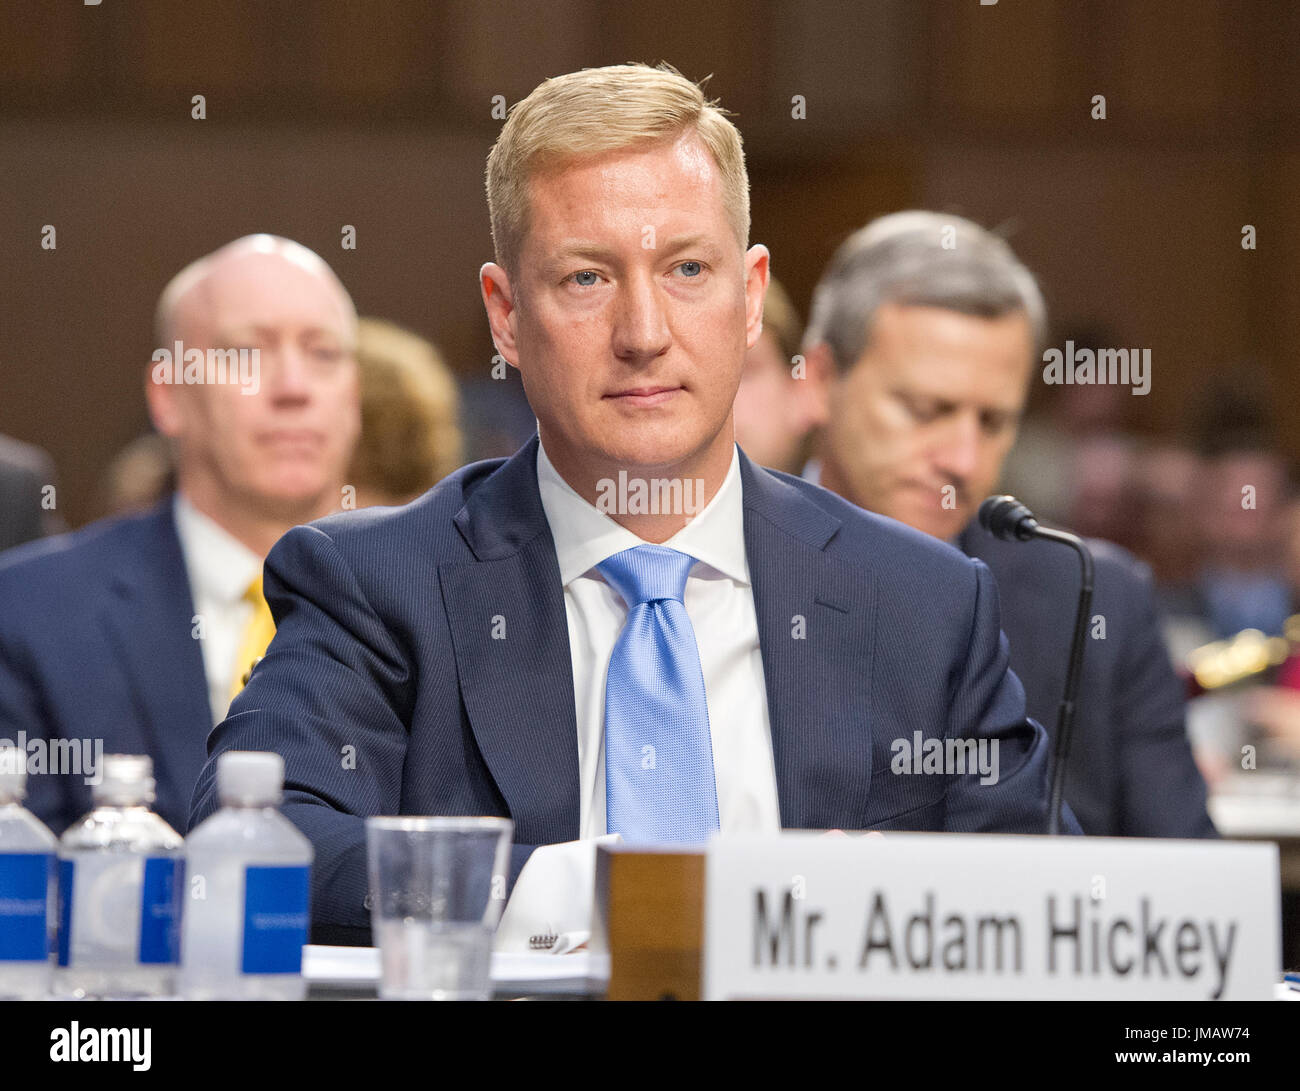 Washington, Us. 26th July, 2017. Adam Hickey, Deputy Assistant Attorney General, National Security Division, United States Department Of Justice appears to testify before the US Senate Committee on the Judiciary oversight hearing to examine the Foreign Agents Registration Act (FARA) and attempts to influence US elections, focusing on lessons learned from current and prior administrations on Capitol Hill in Washington, DC on Wednesday, July 26, 2017. Credit: Ron Sachs/CNP - NO WIRE SERVICE - Photo: Ron Sachs/Consolidated/dpa/Alamy Live News - Stock Image